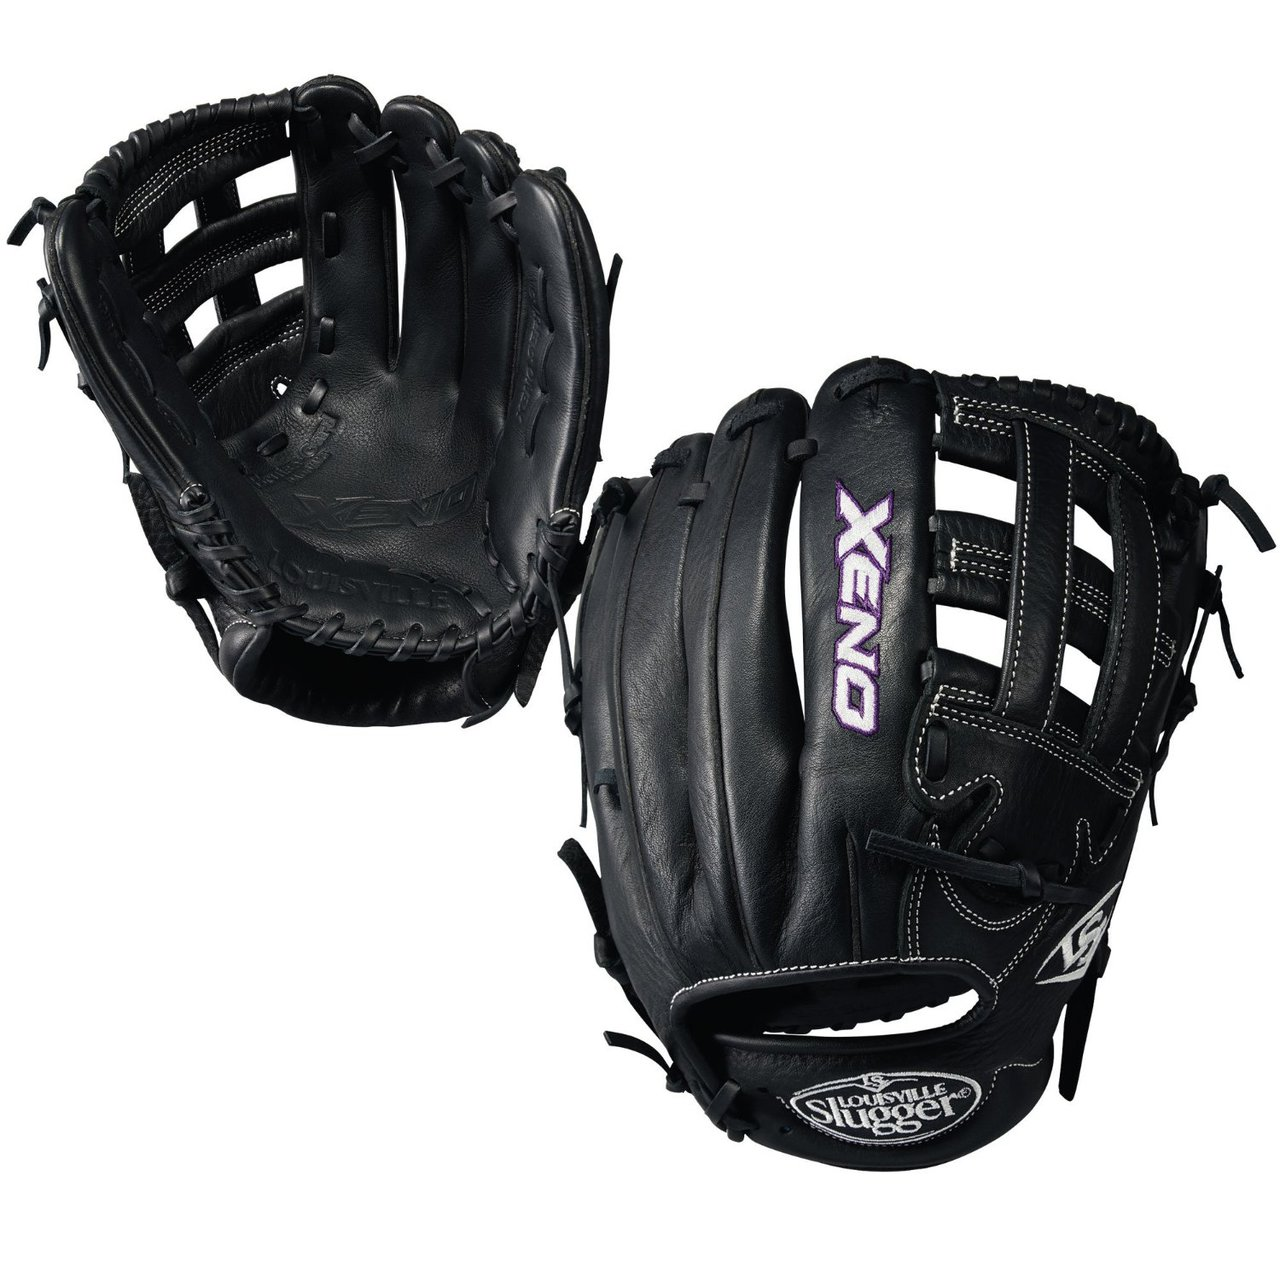 louisville-slugger-xeno-series-11-75-inch-wtlxnrf171175-fastpitch-softball-glove-right-hand-throw LXNRF171175-RightHandThrow Louisville 887768498320